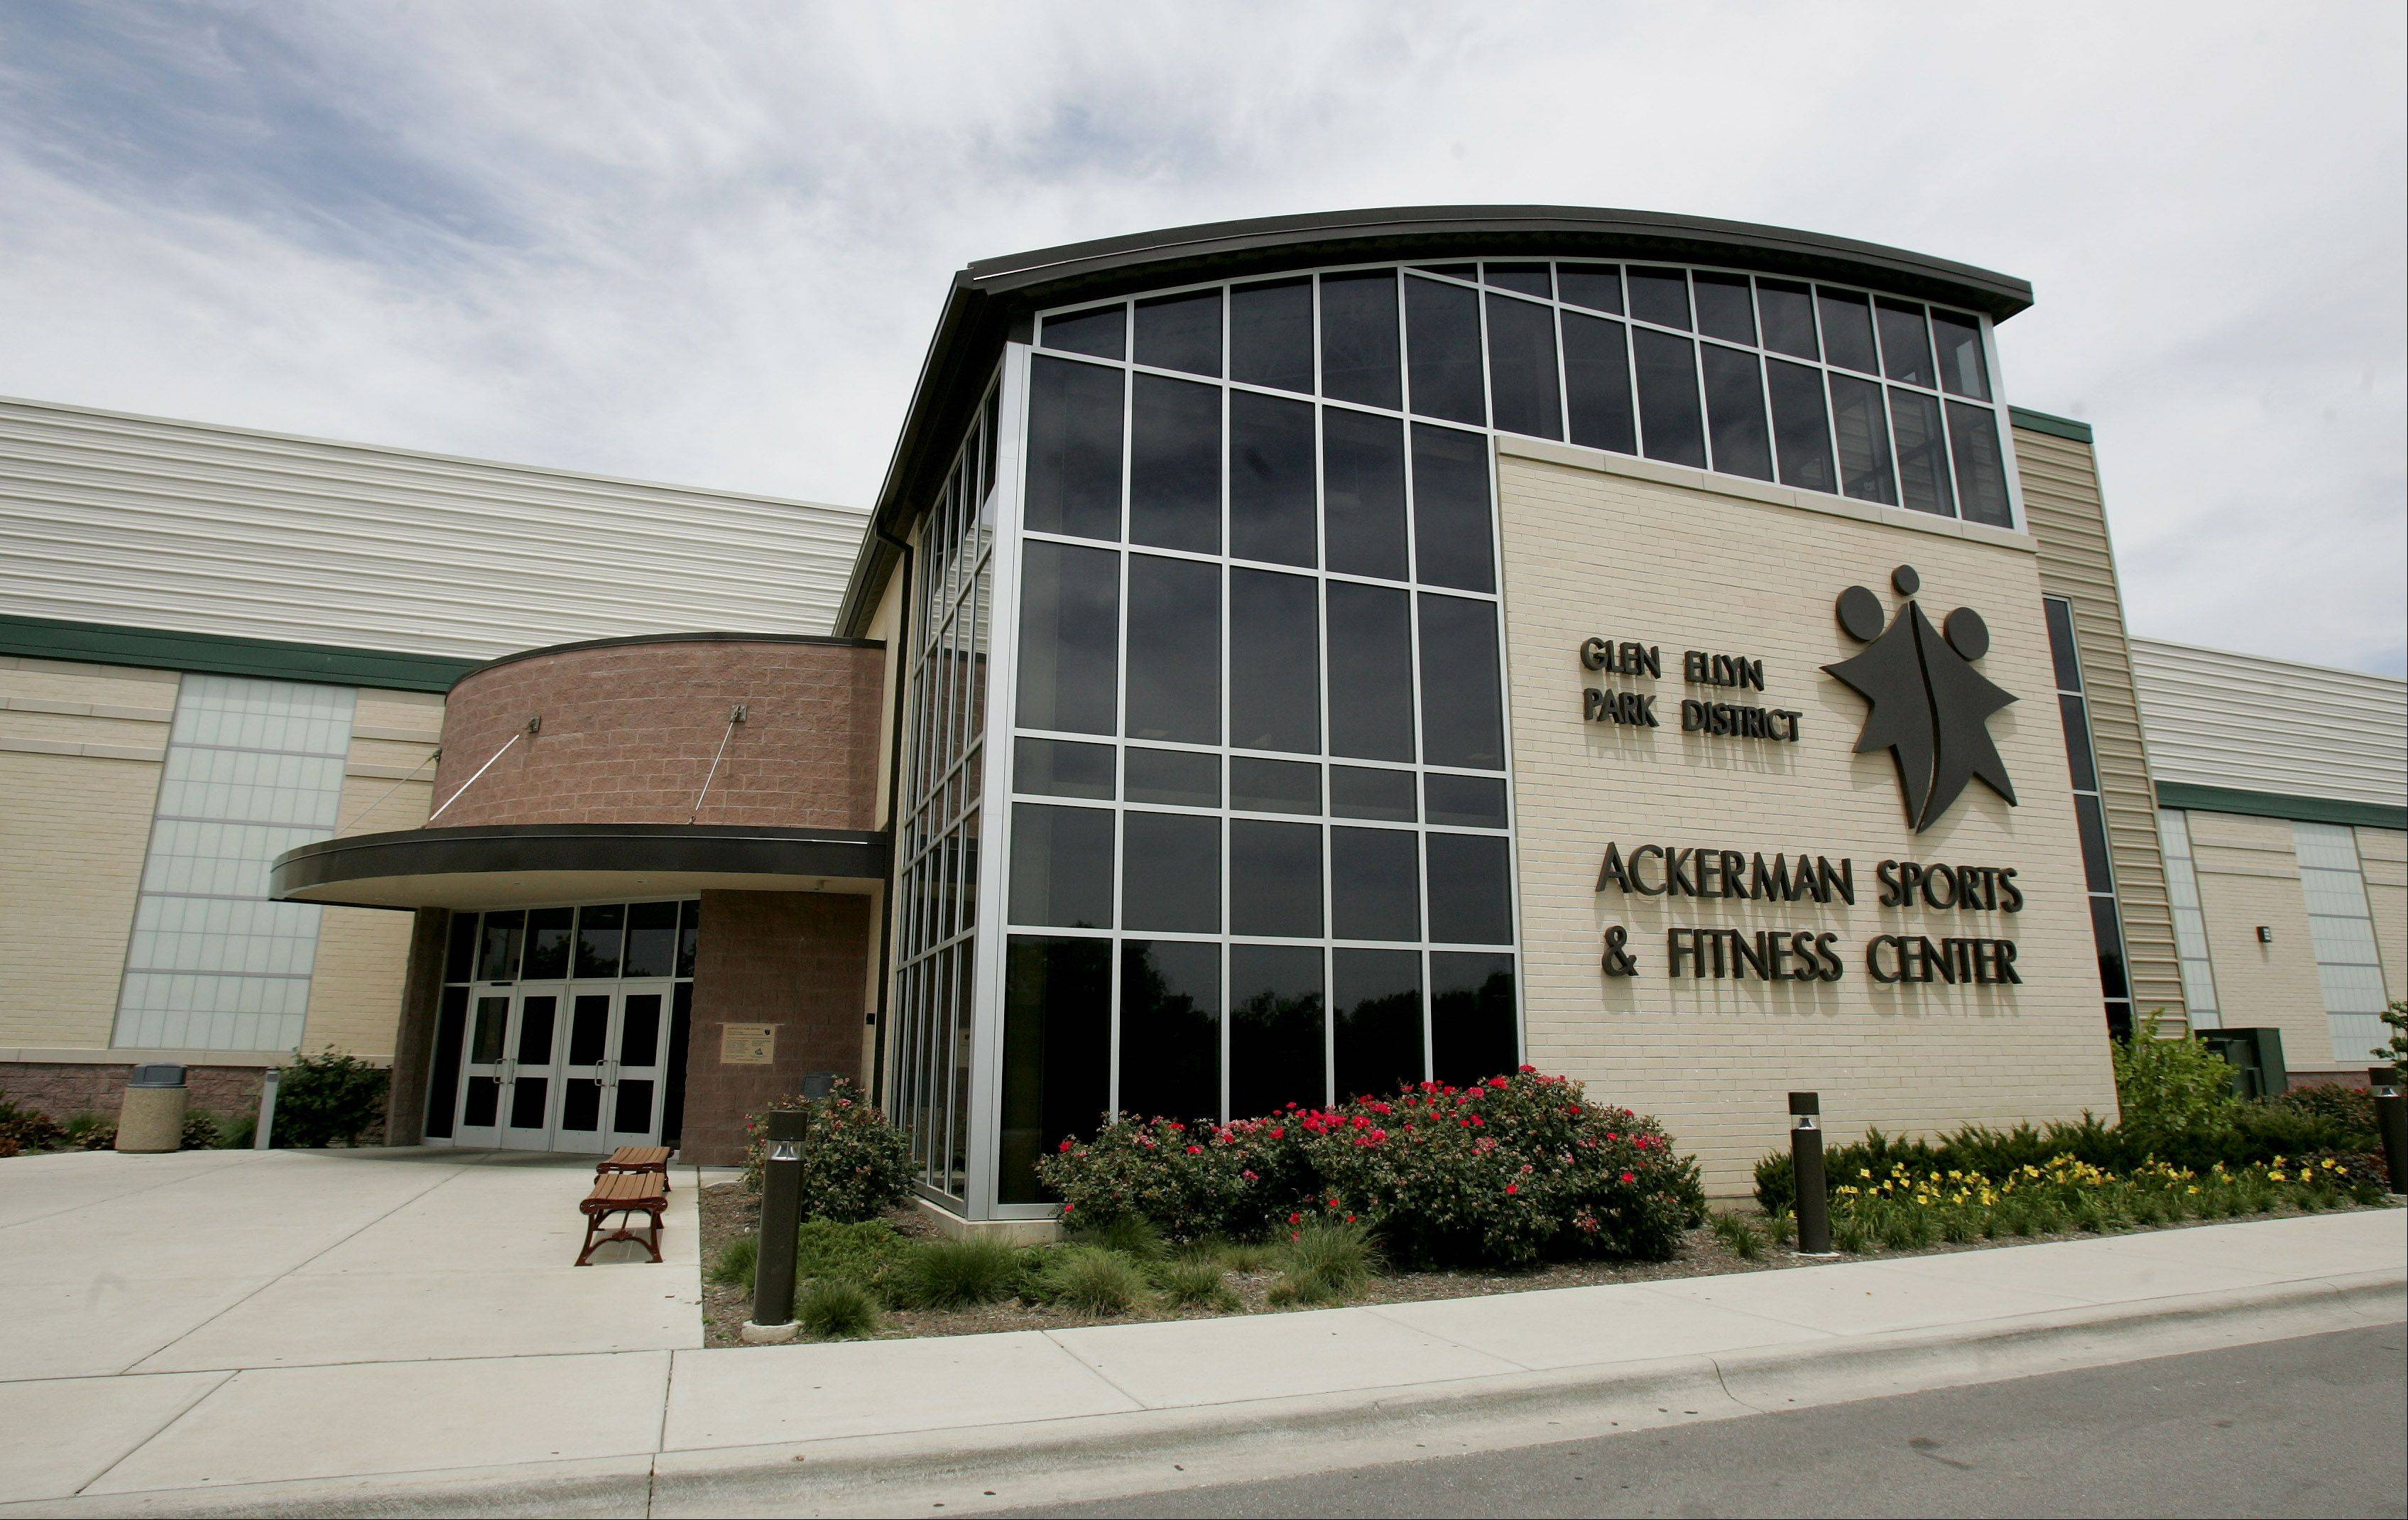 Major roof repairs at the Ackerman Sports and Fitness Center were completed Thursday, Glen Ellyn Park District officials said.